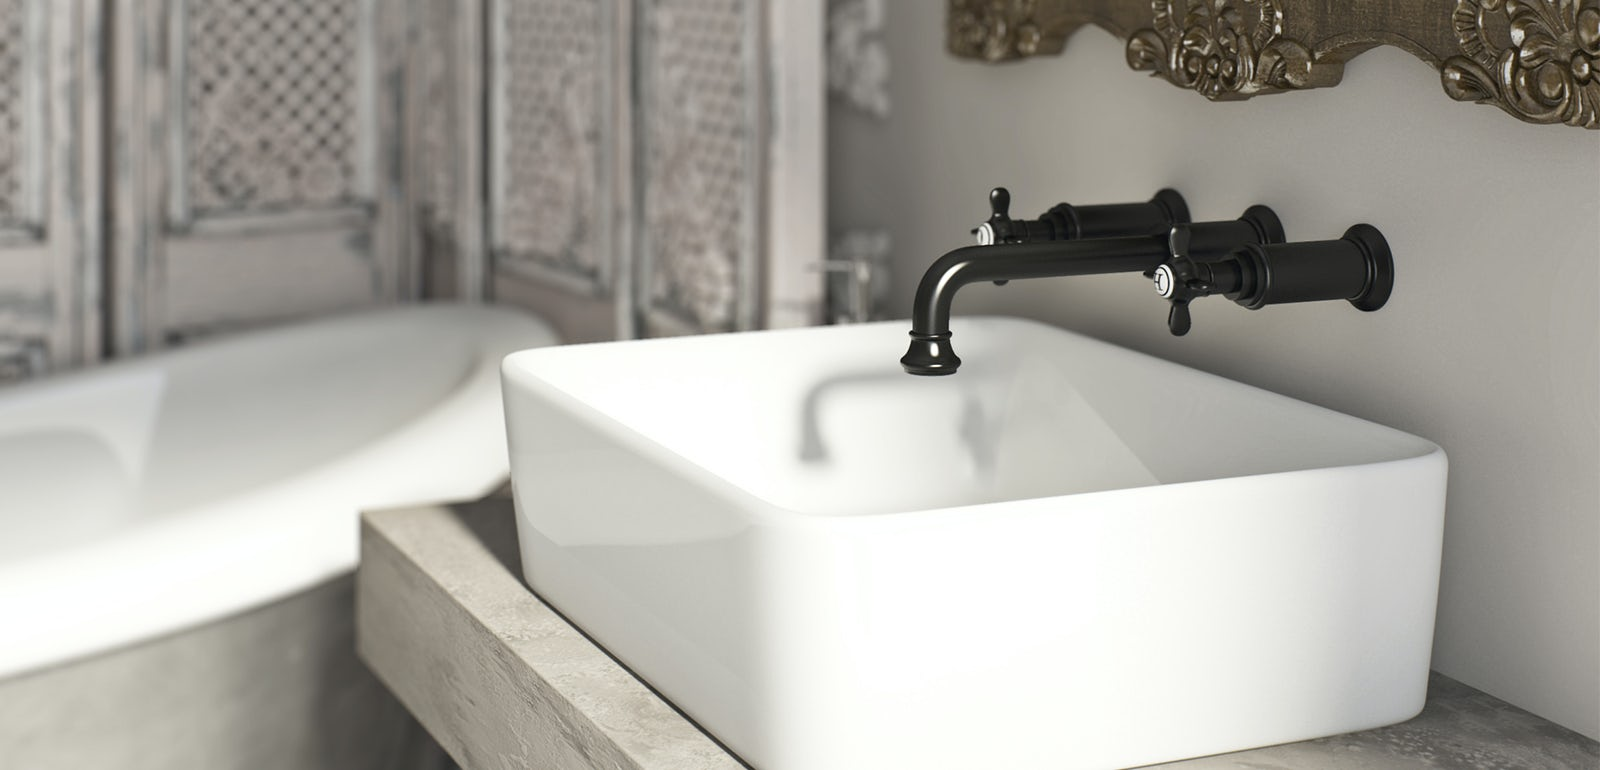 A contemporary wall-mounted chrome basin tap with black handles